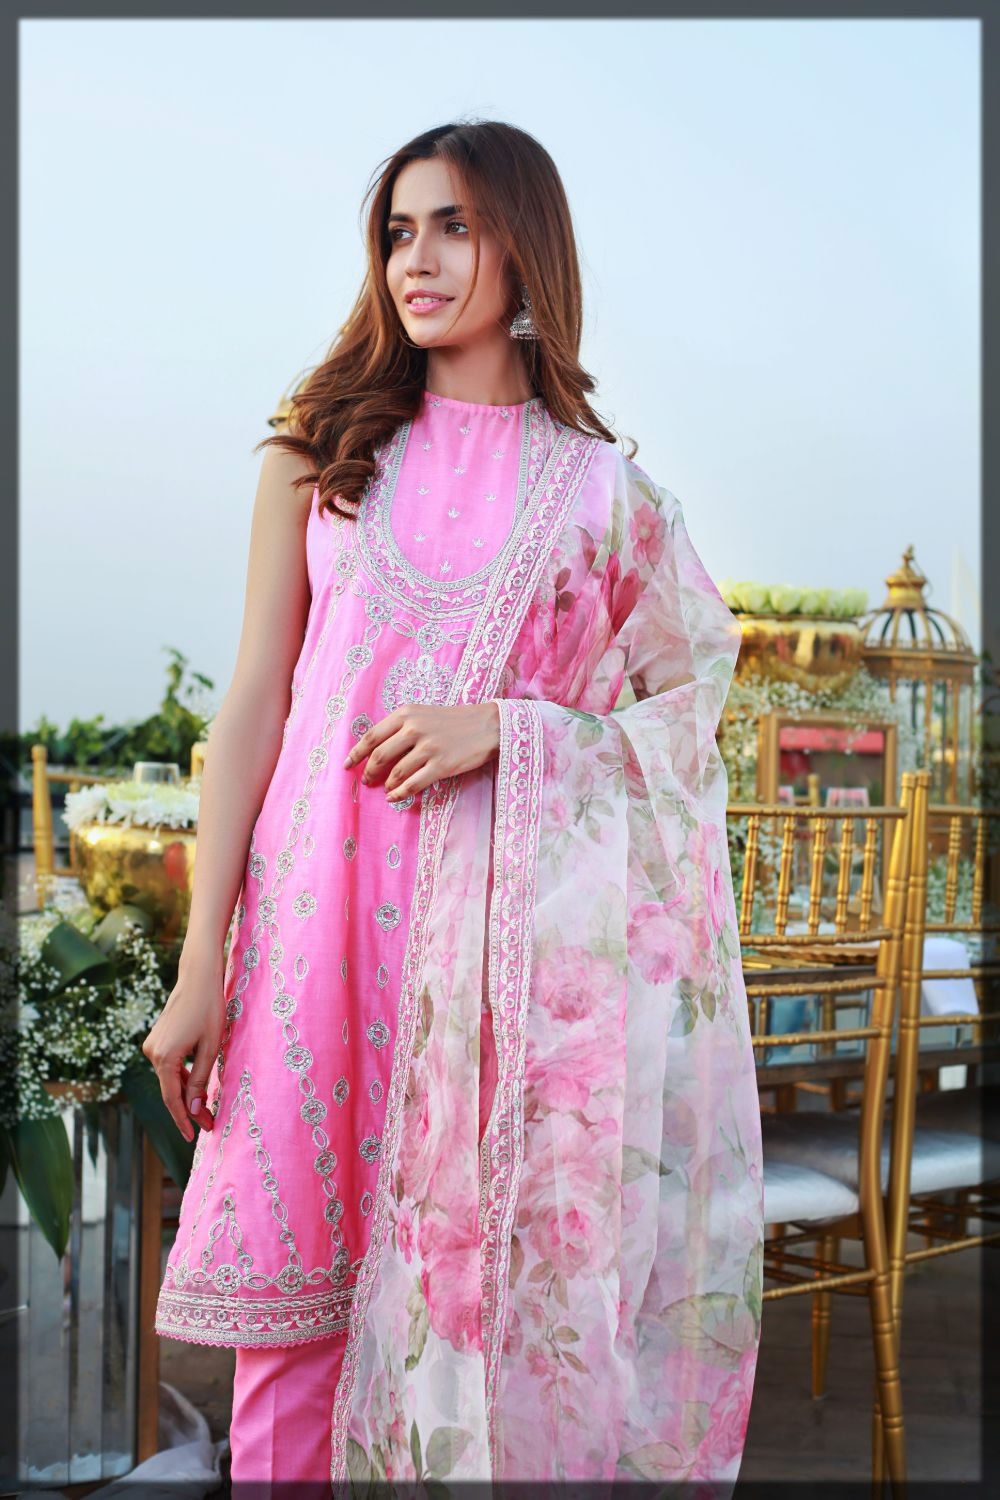 embroidered pink and white lawn dress